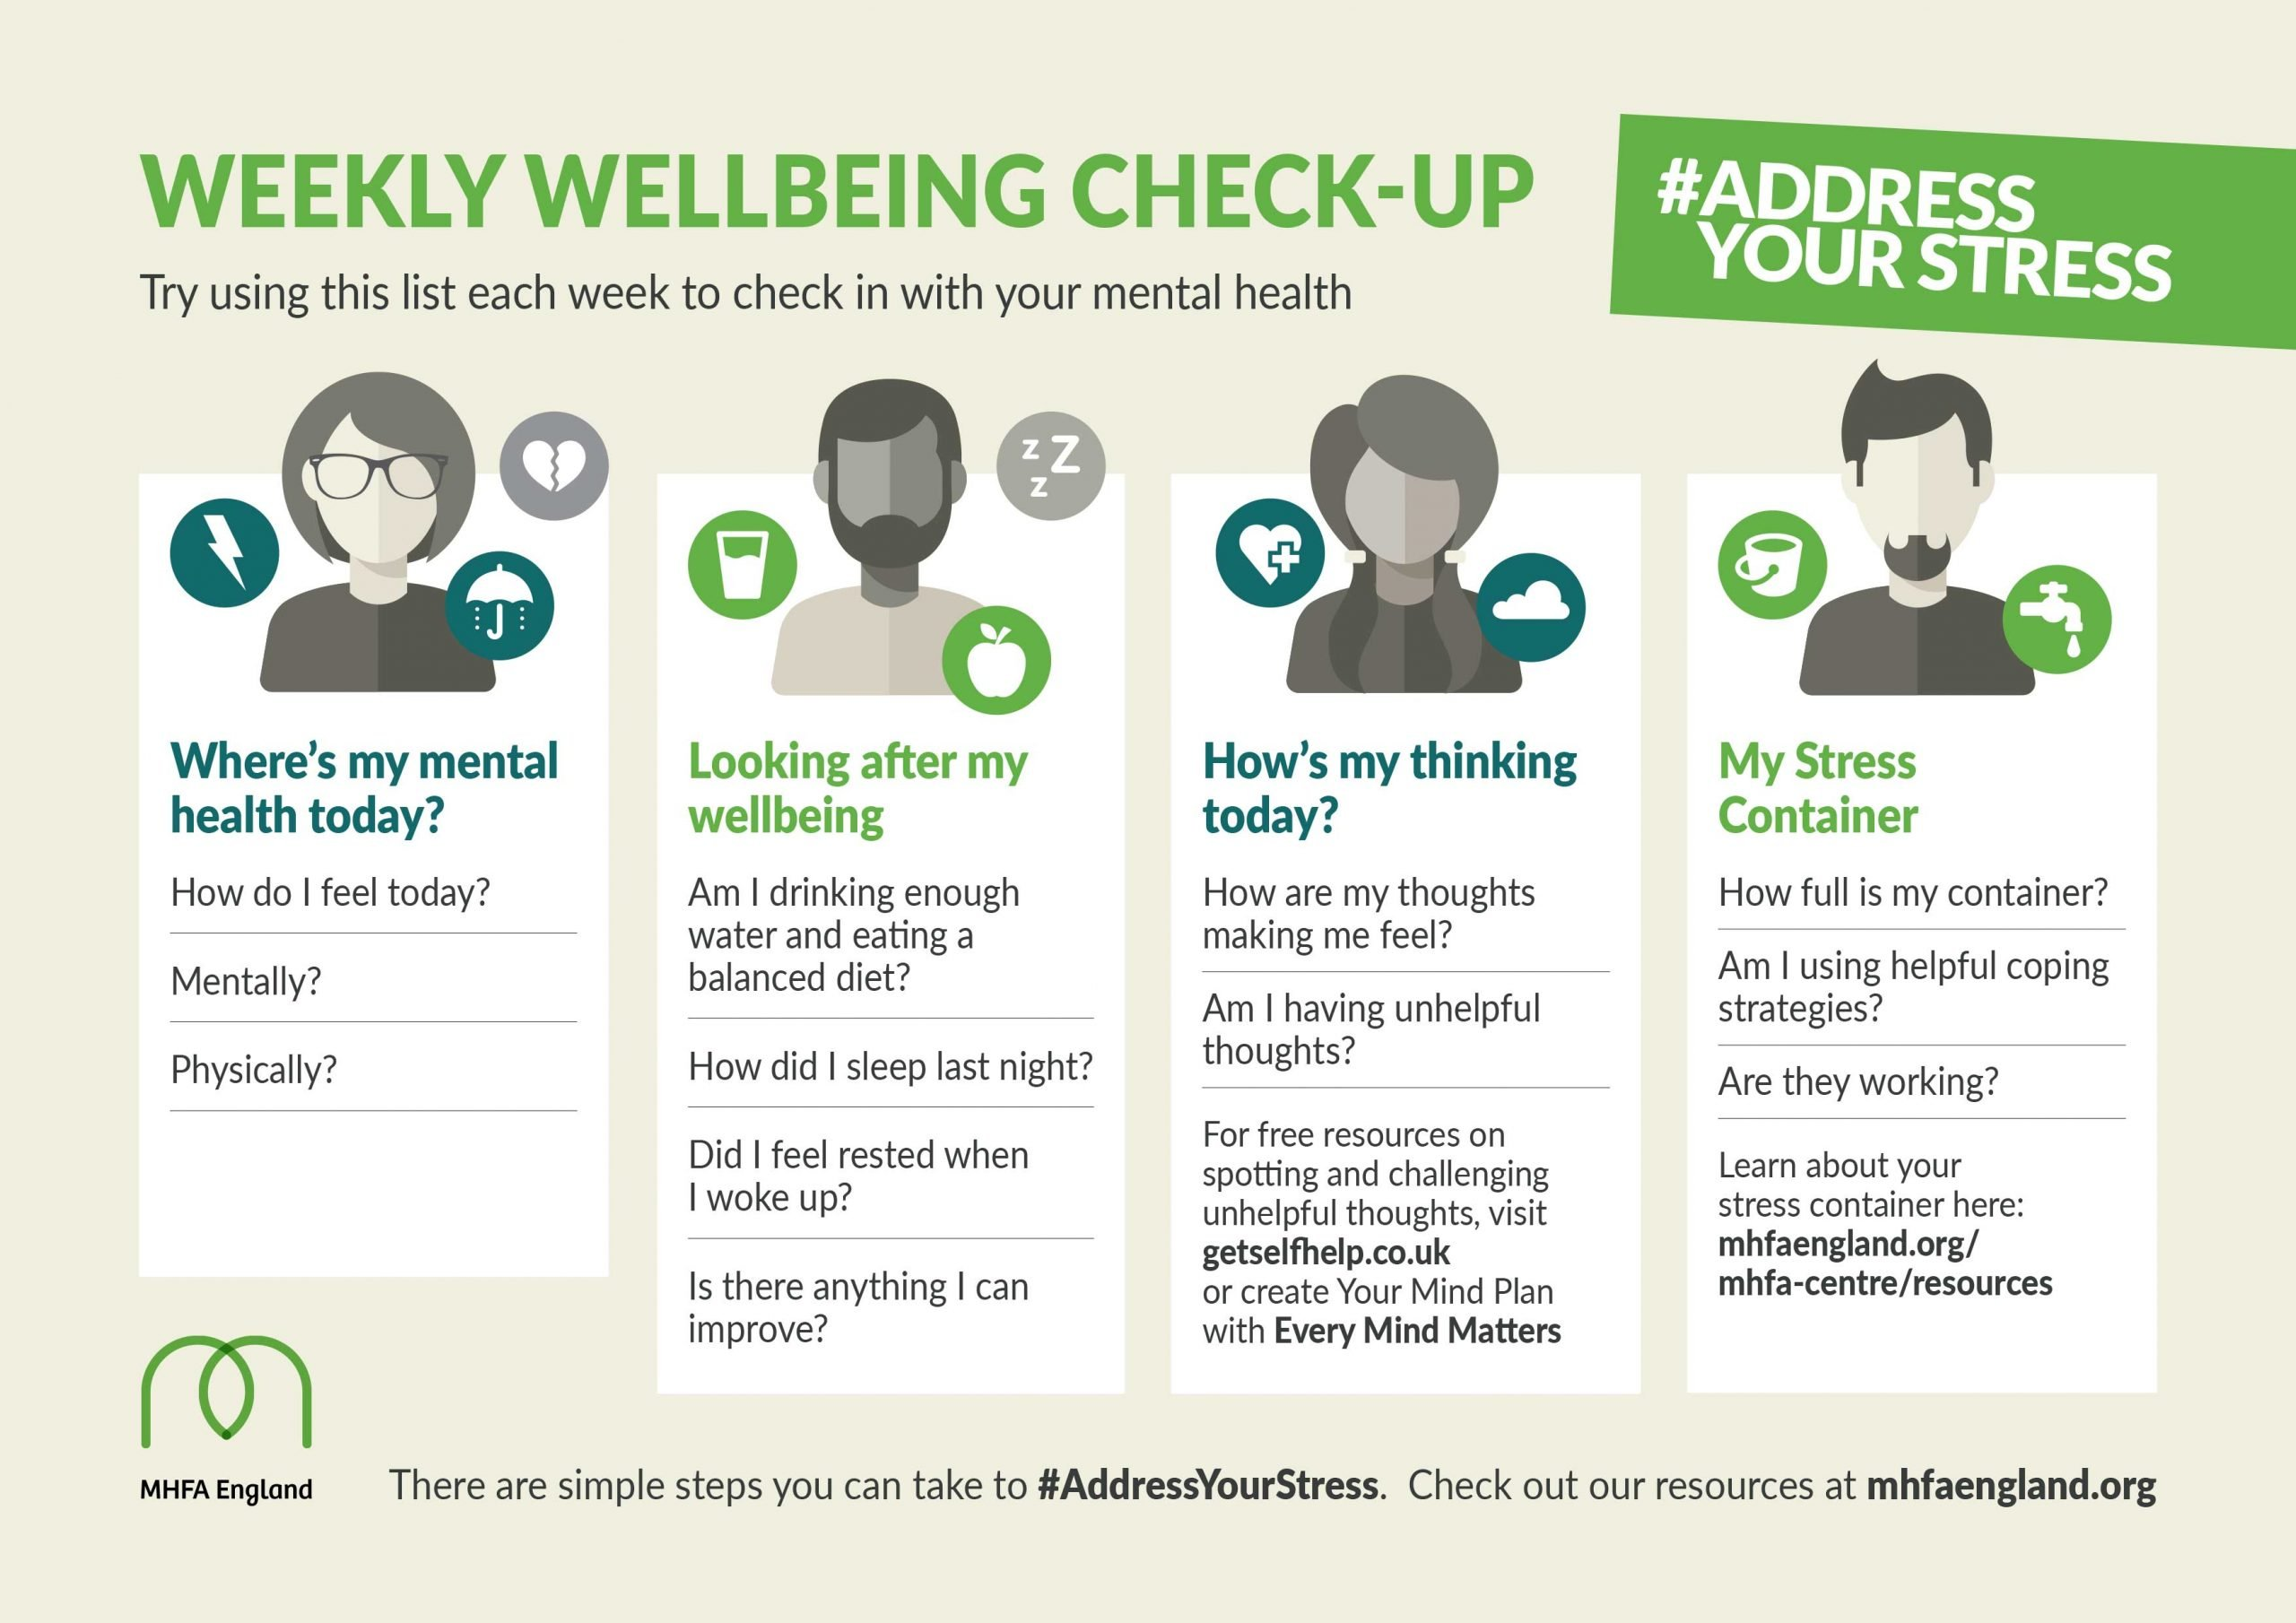 Weekly wellbeing check-up from MHFA England